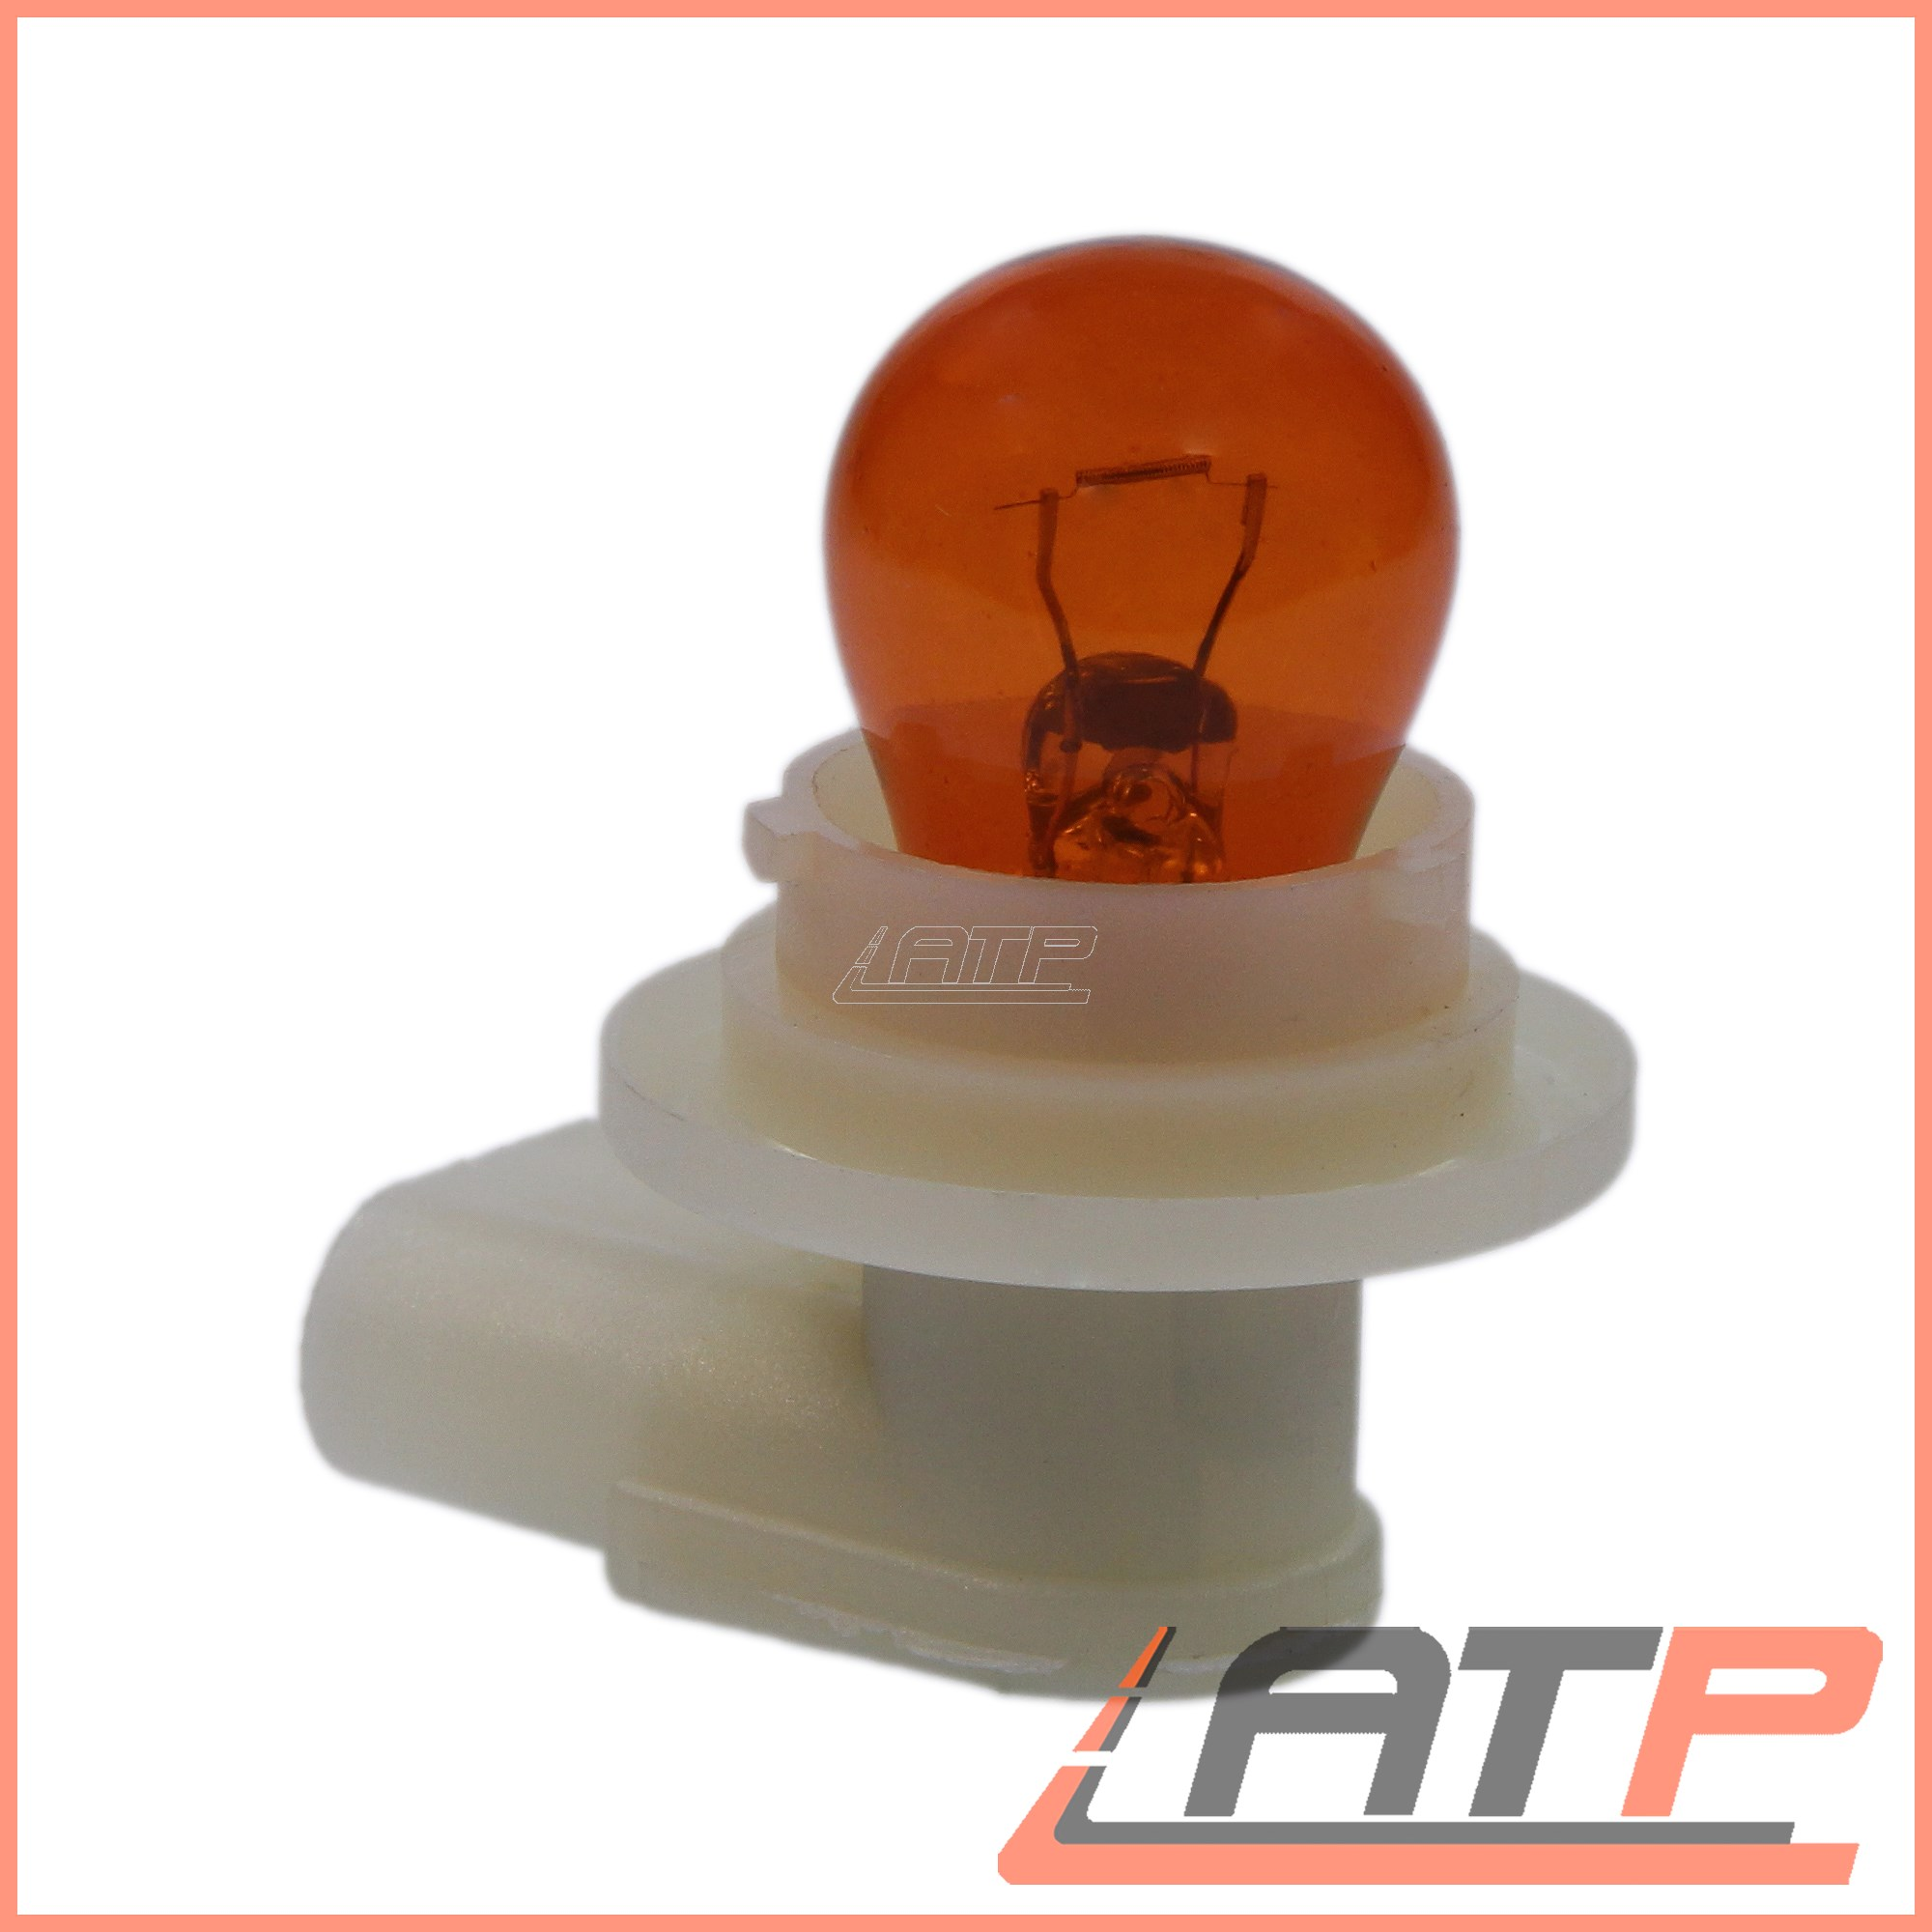 1x-INDICATOR-FRONT-RIGHT-WHITE-LENS-BMW-3-SERIES-E46 thumbnail 5